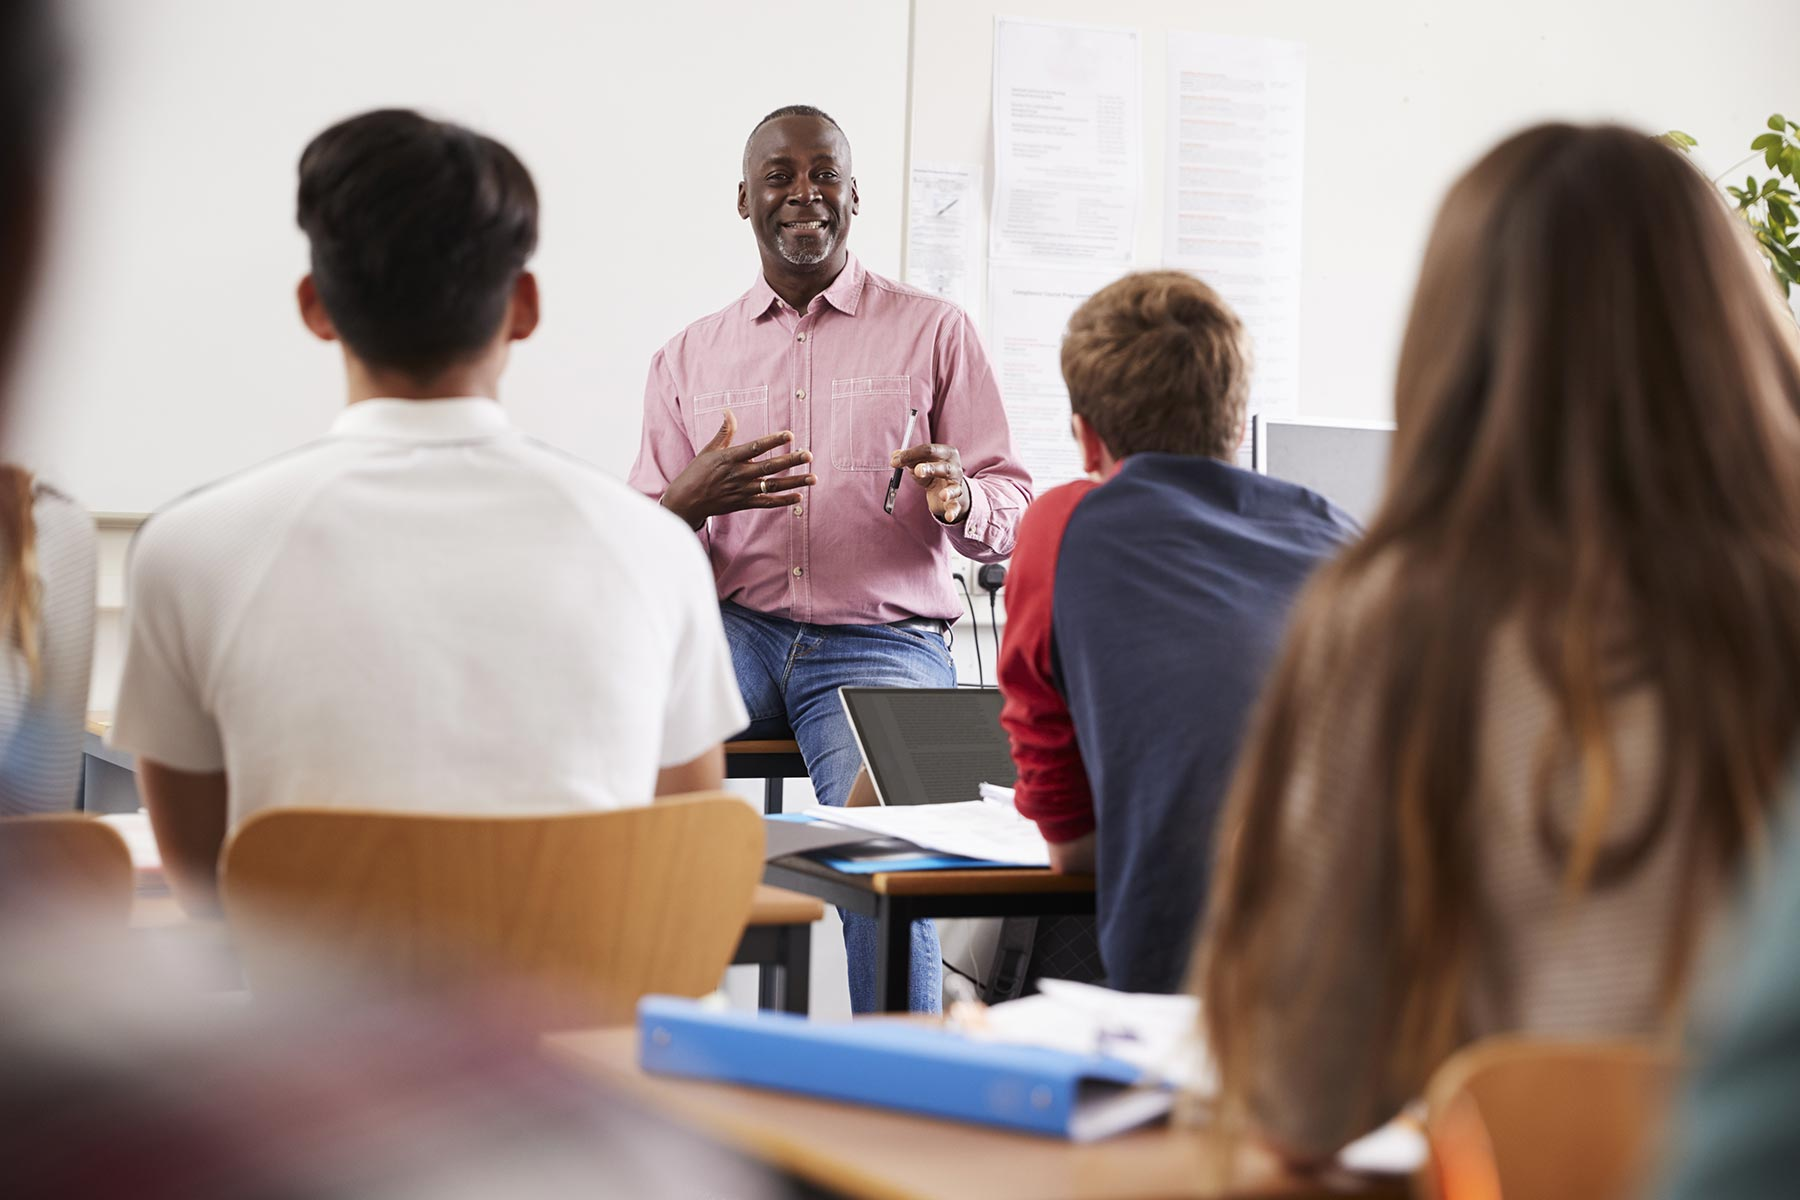 teacher-standing-at-front-of-college-students-for-PLMC7VR.jpg